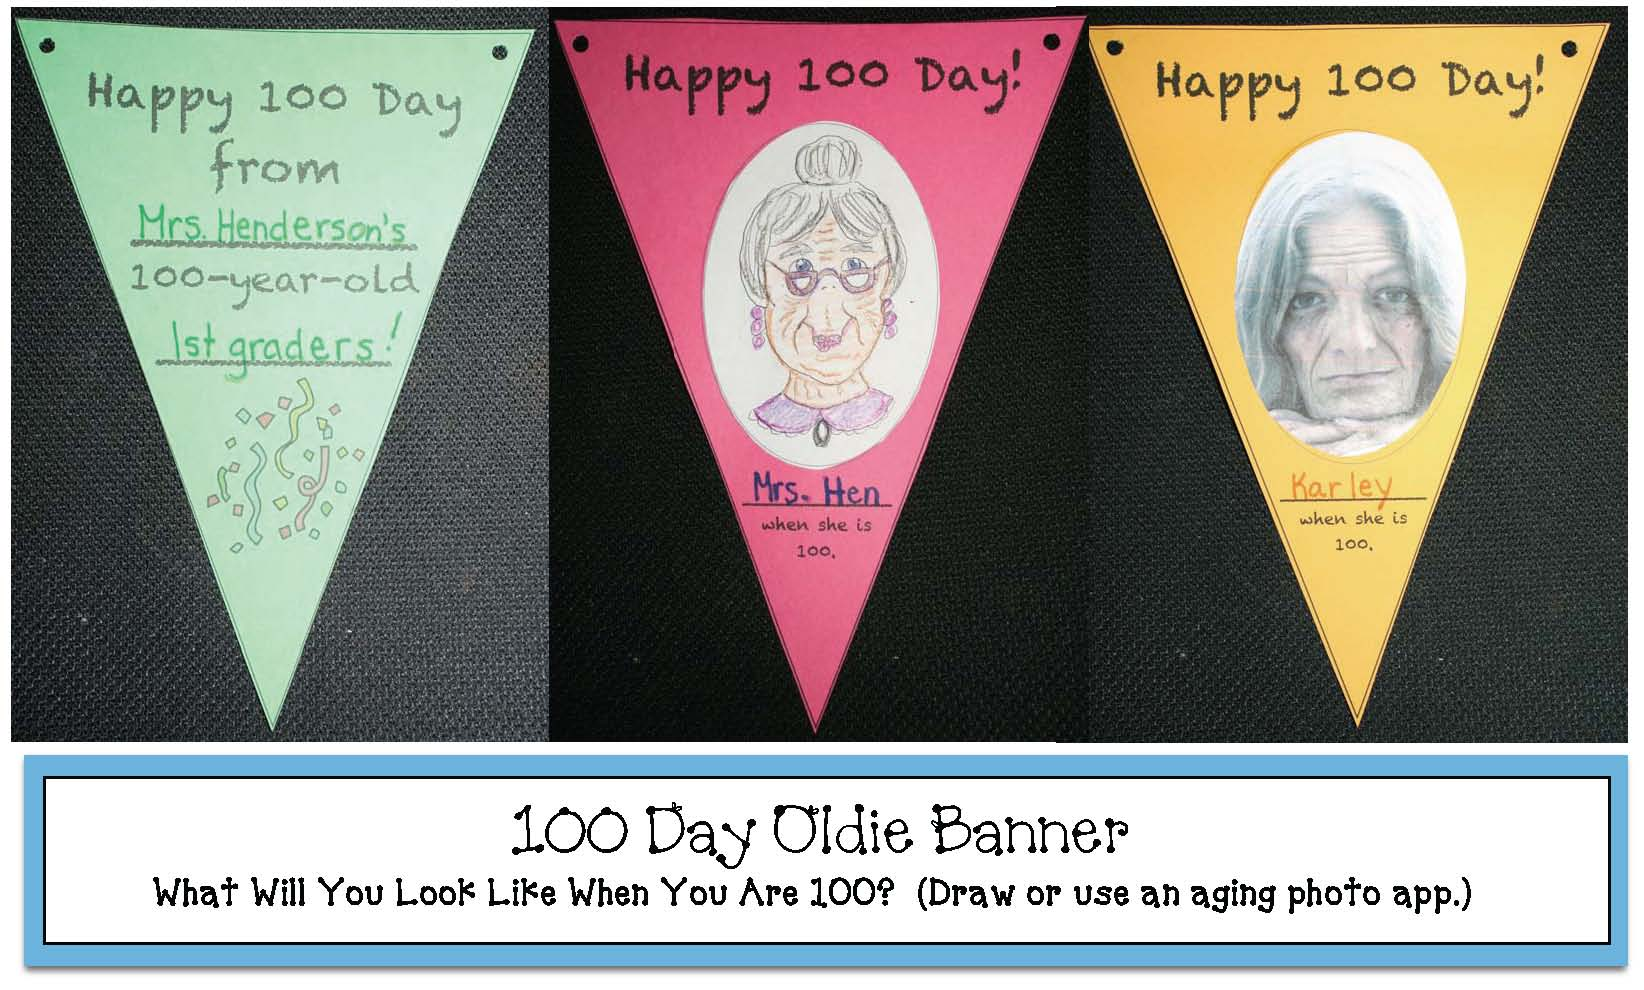 100 day activities, 100 day crafts, 100 day games, 100 day bulletin boards, 100 day certificates, 100 day bookmarks, 100 day crowns, 100 day banners, if I were 100 years old template, aging apps for 100 day activities,